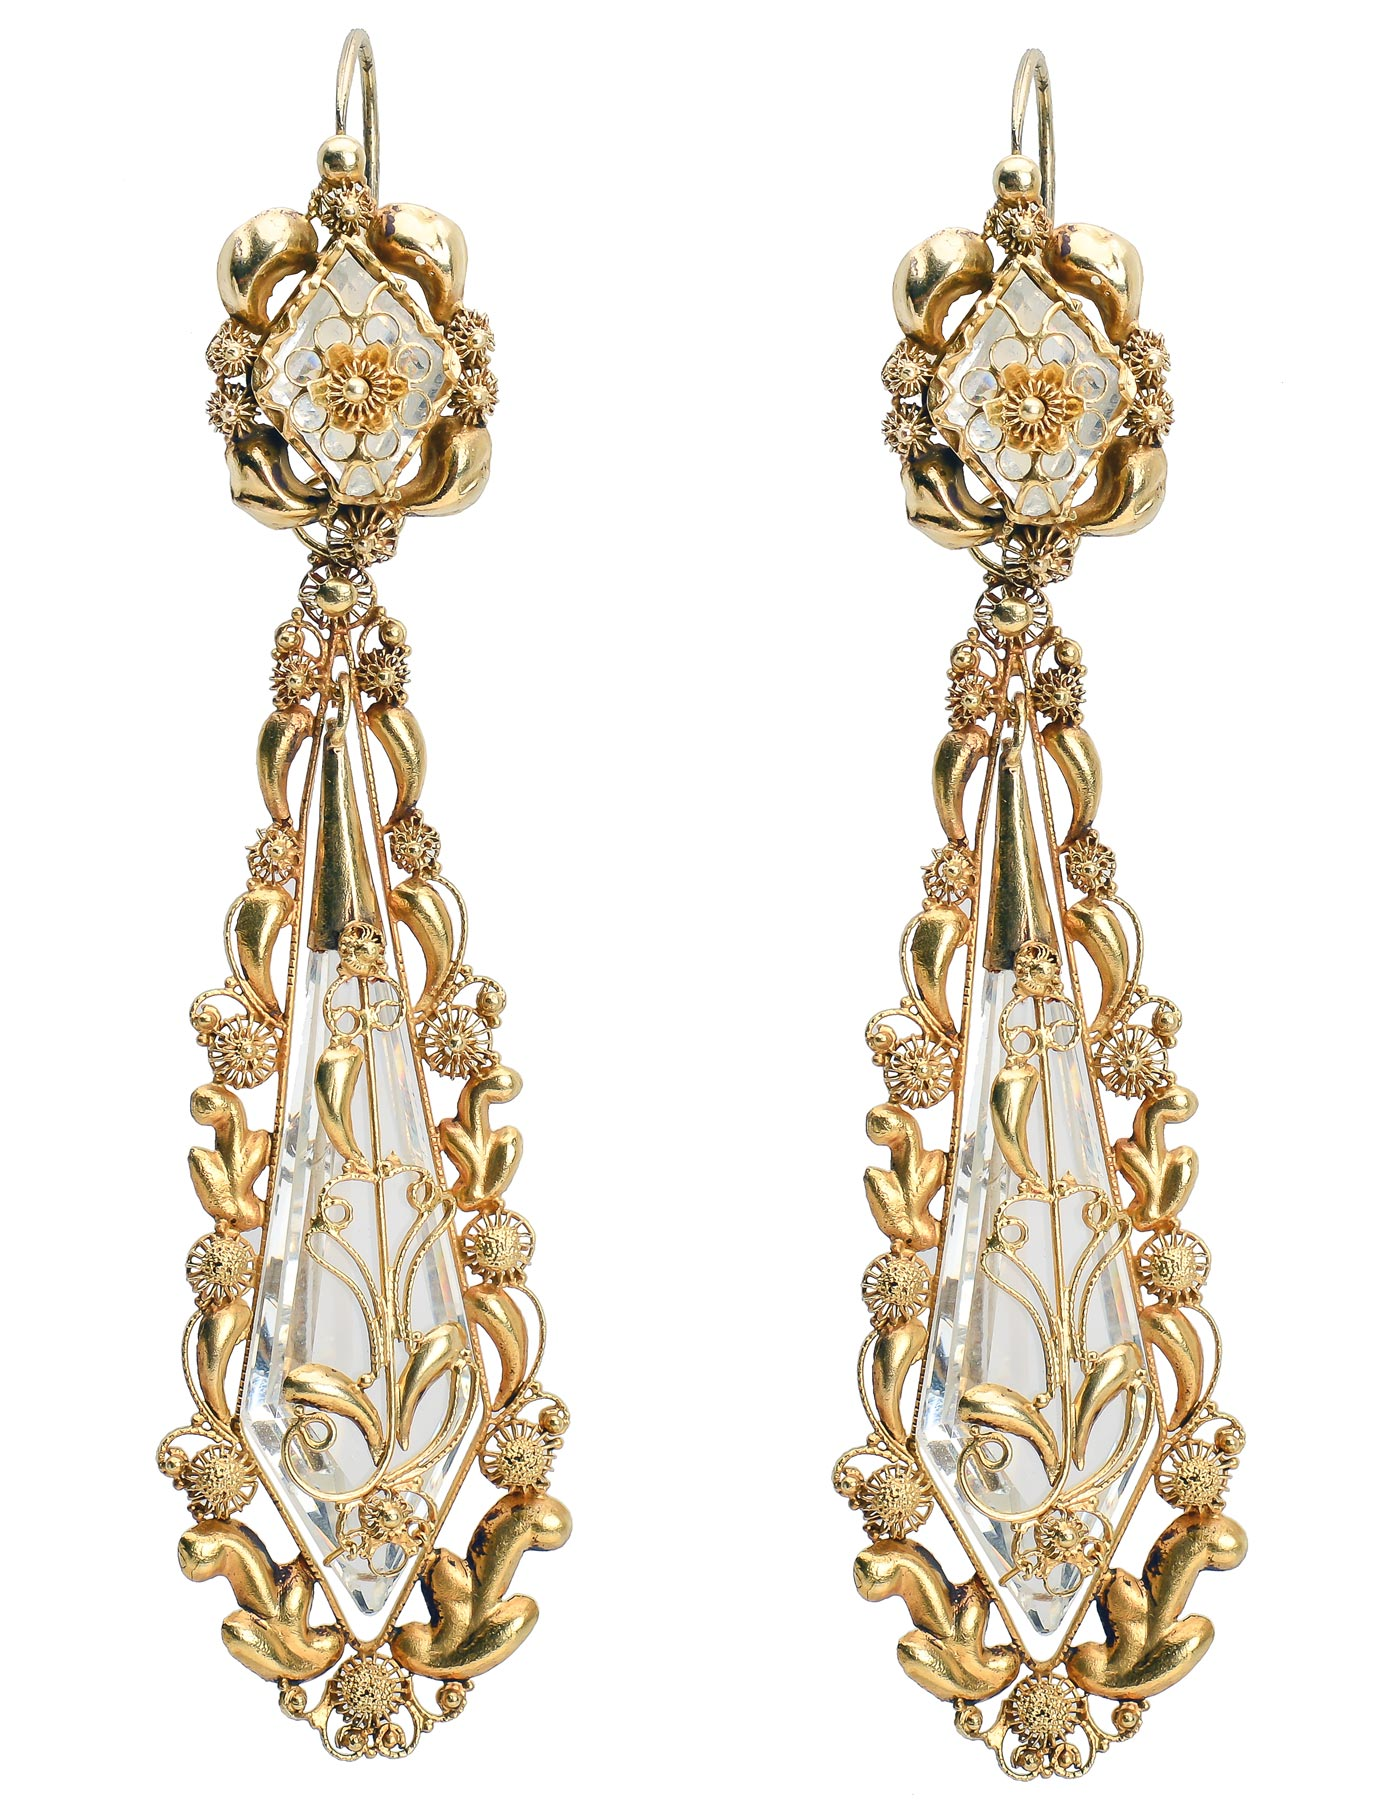 """Pair of gold drop earrings, probably England, ca. 1830. 15-karat gold and faceted glass, 3 ⅛ x ¾ in. Photograph courtesy of <a href=""""http://www.georgianjewelry.com."""" target=""""_blank"""" rel=""""noopener"""">The Three Graces Jewelry</a>, Austin, Texas."""